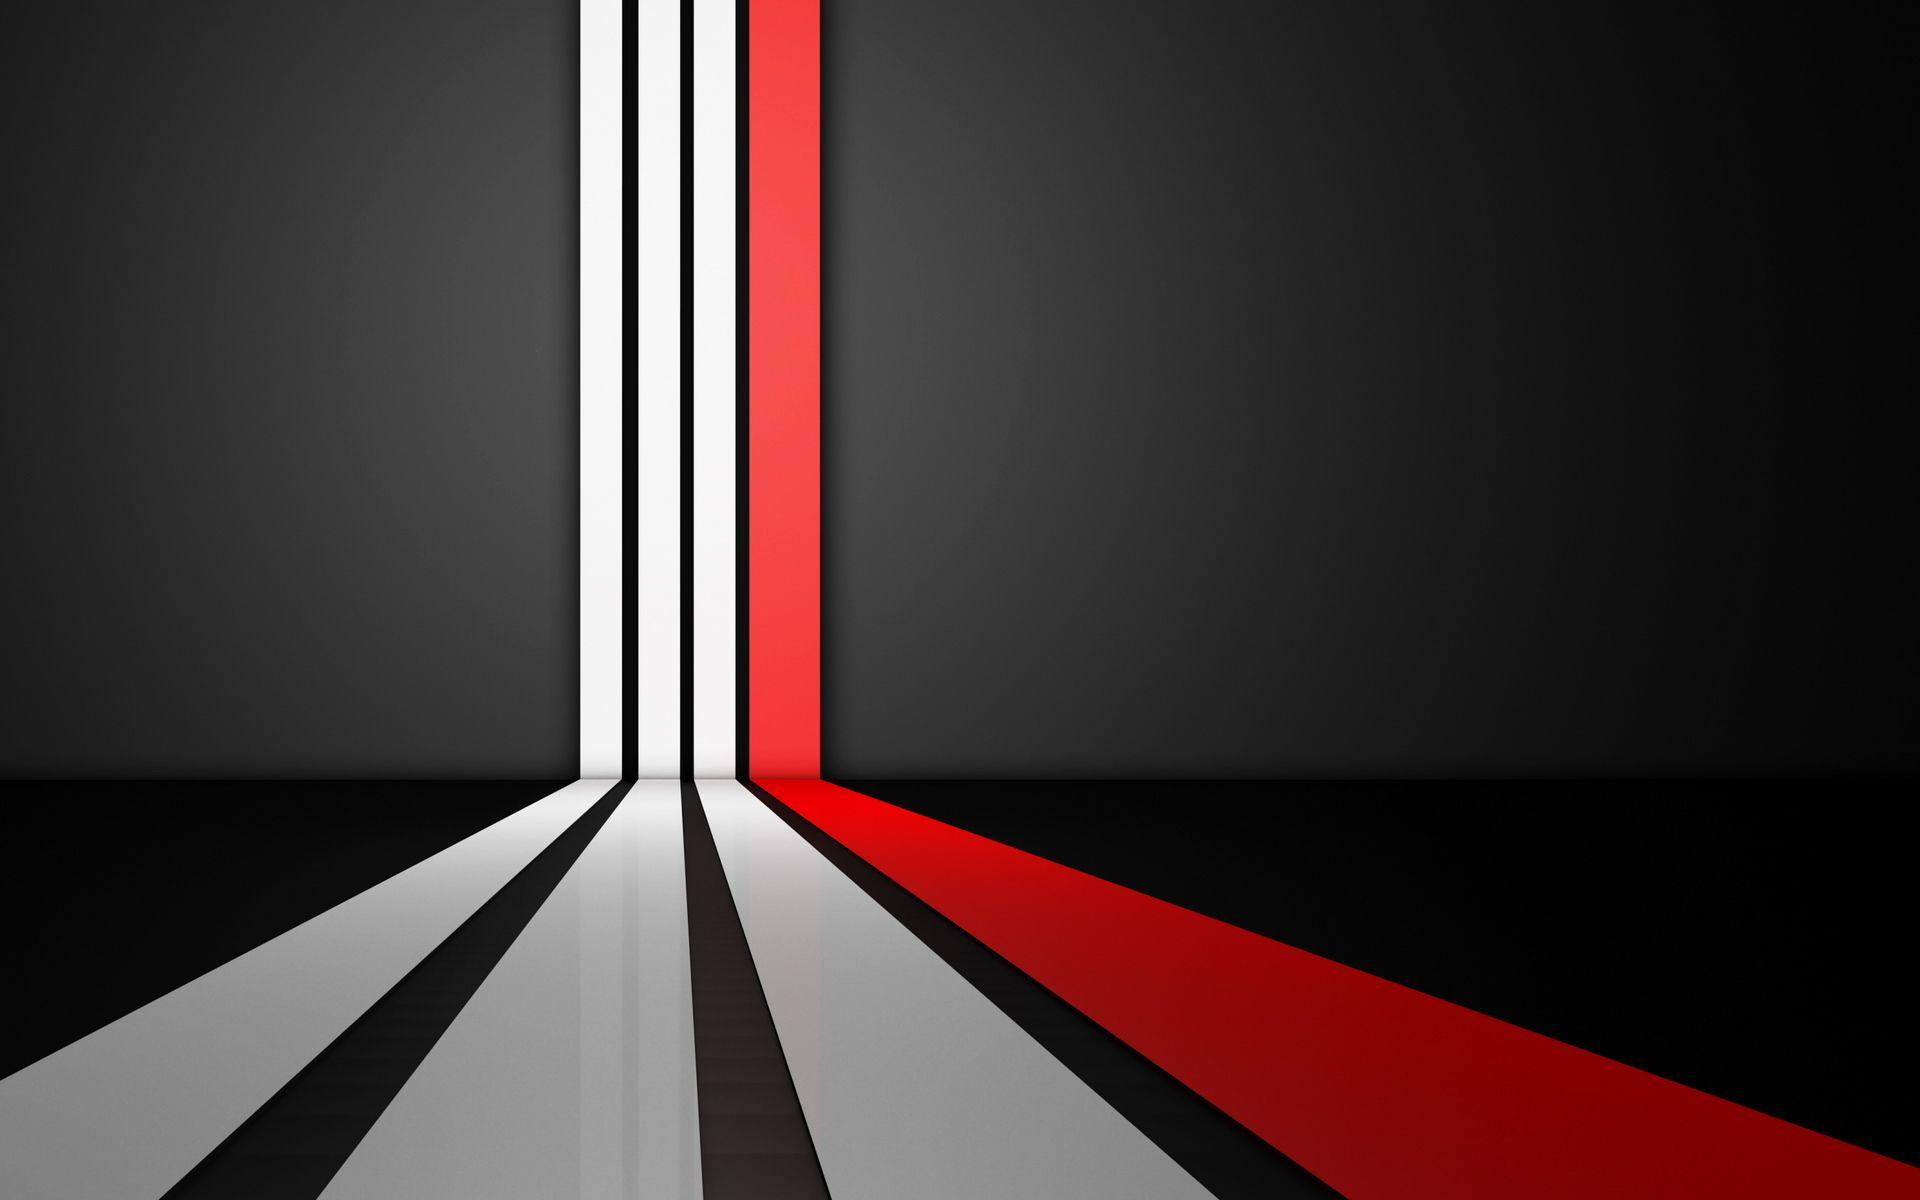 Red White And Black Backgrounds 2 Cool Hd Wallpapers ...